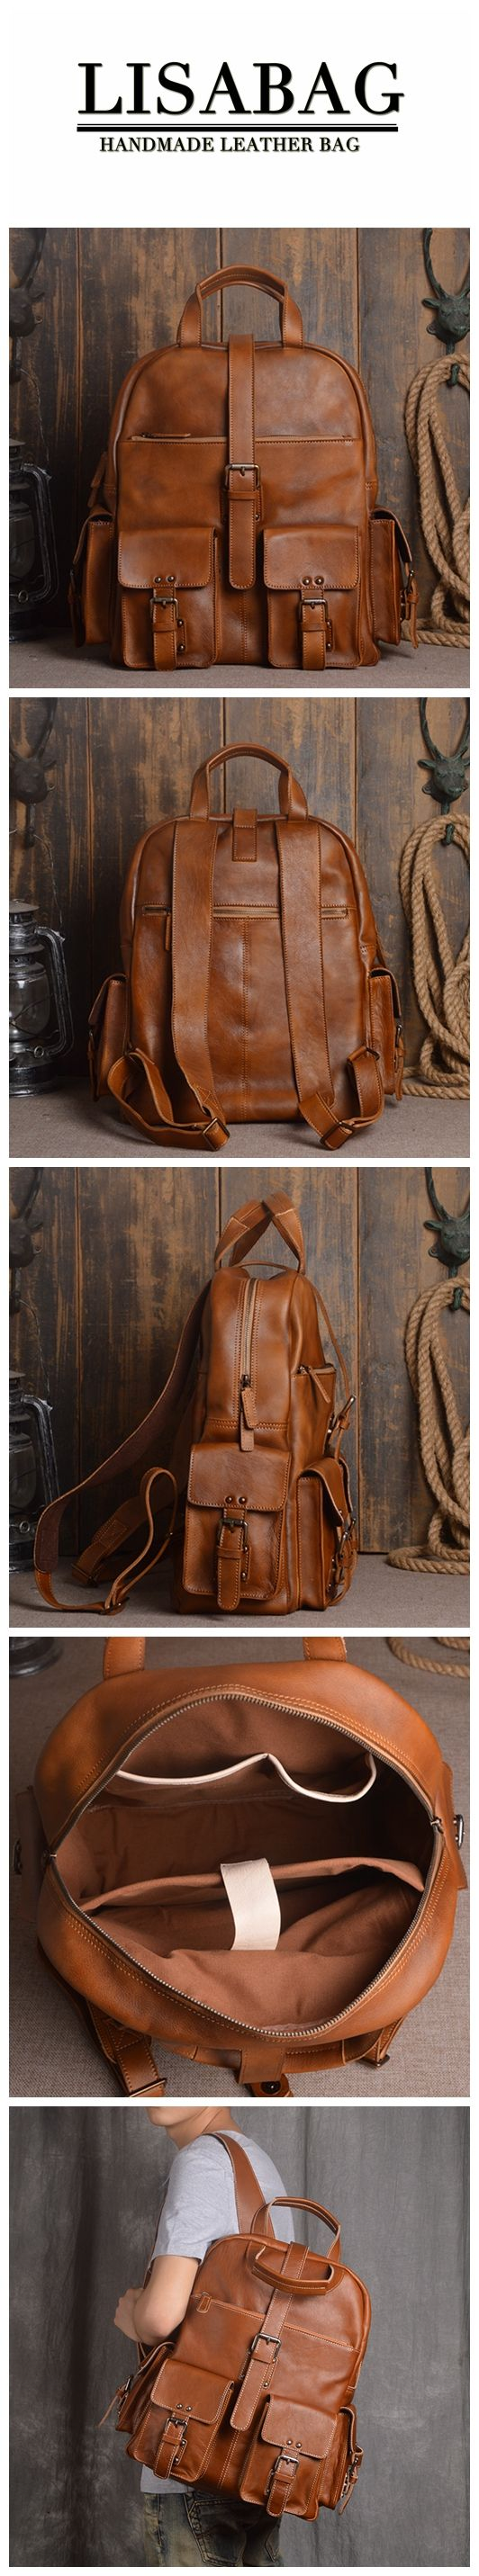 Handmade Vegetable Tanned Leather School Backpack Casual Travel Backpack Laptop Bag 9045